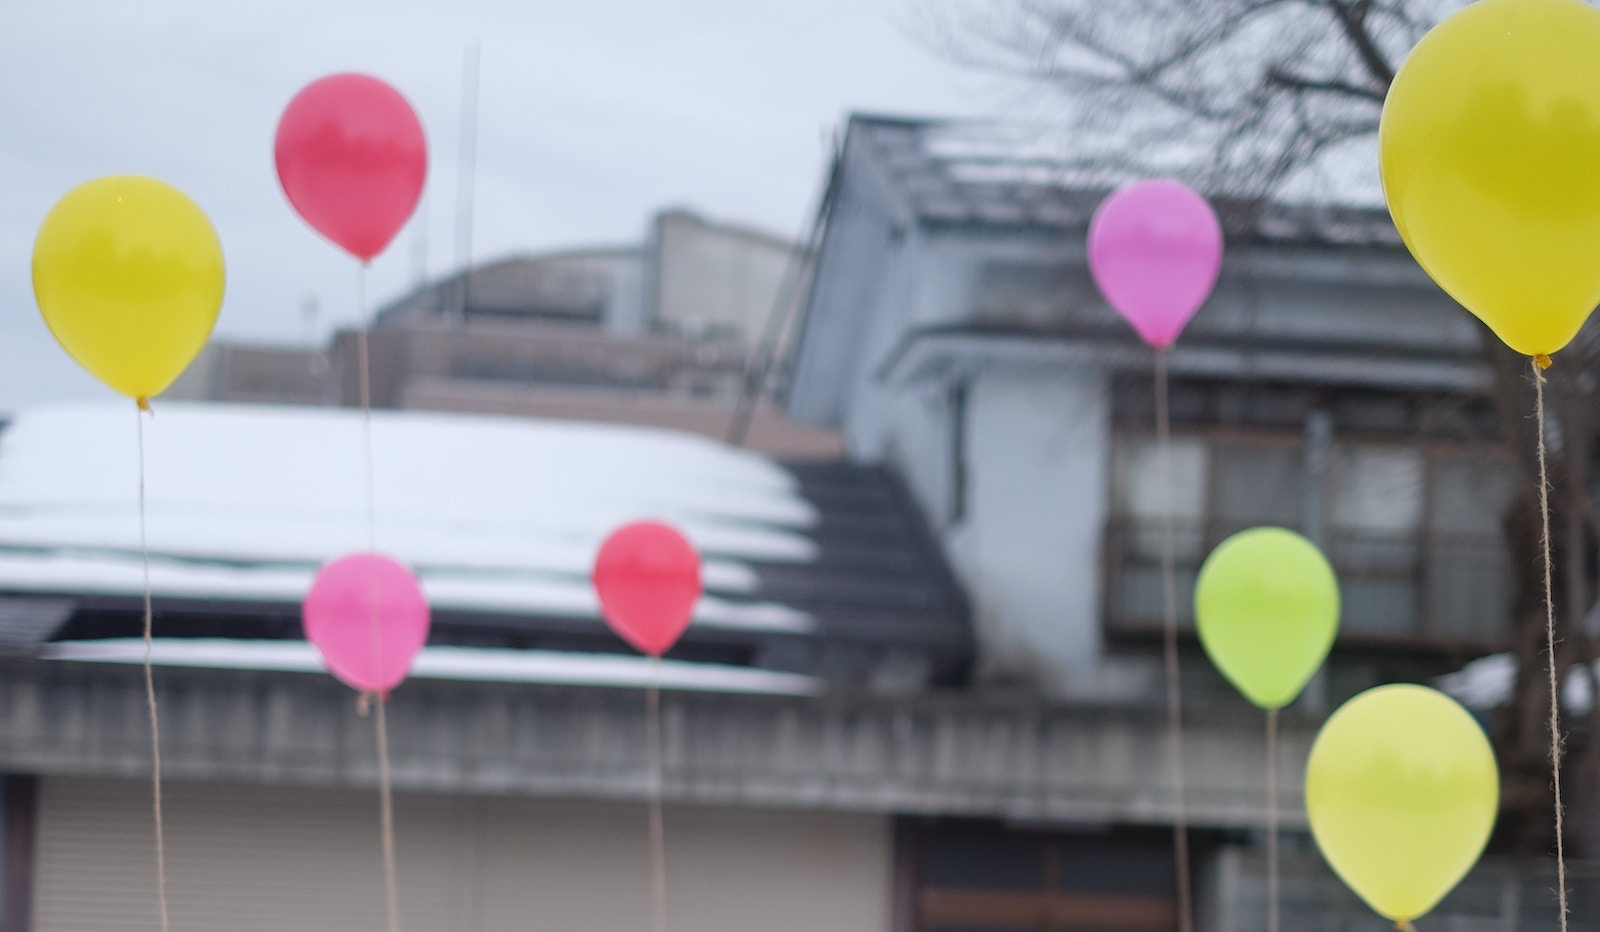 Balloons: inflation means cutting spending today is worth more than income tomorrow